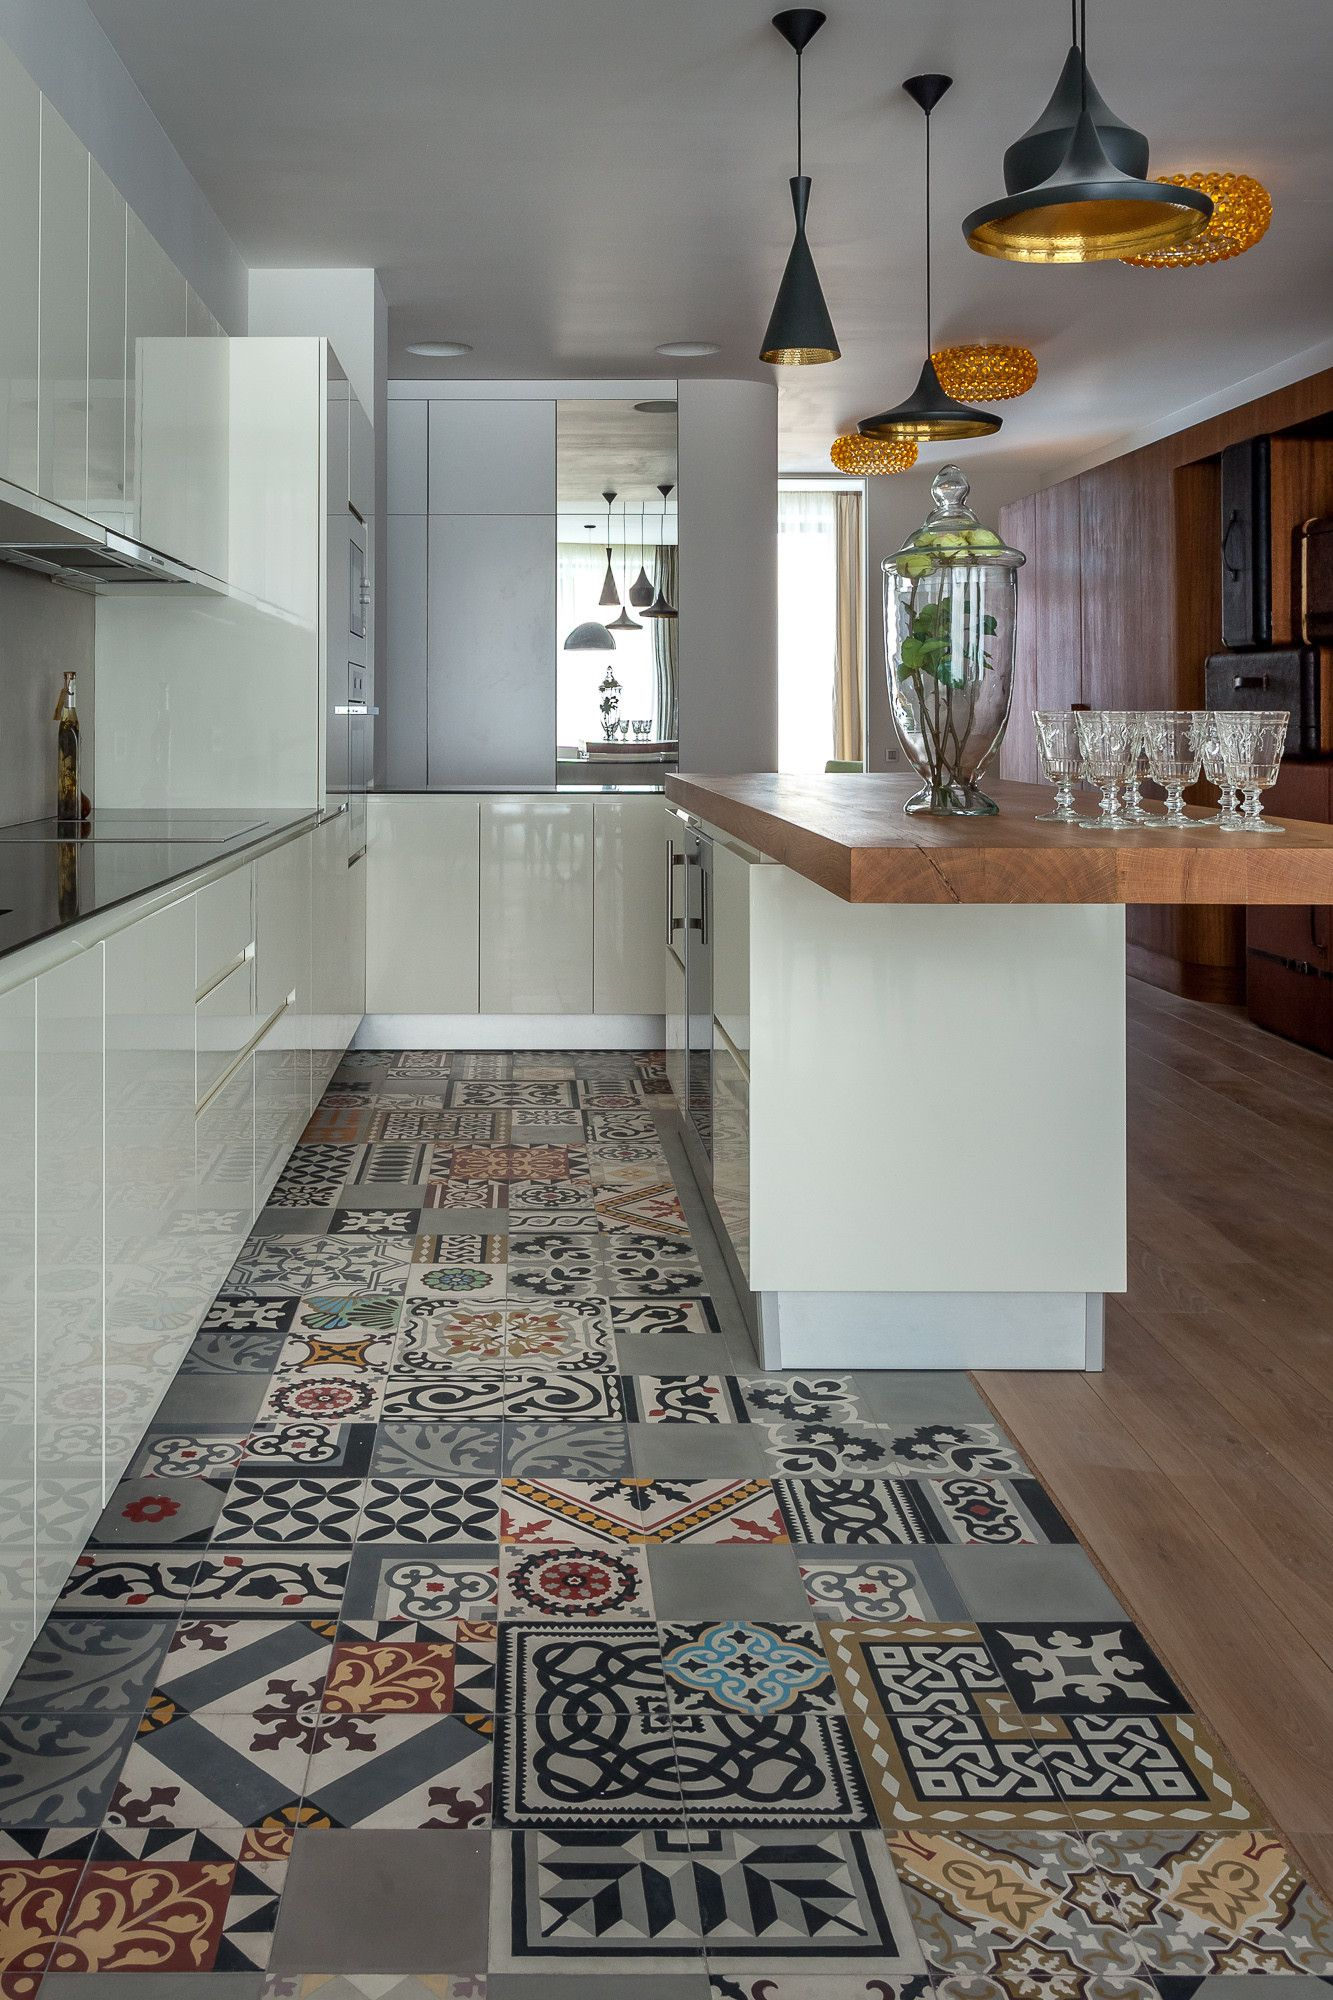 Patchwork kitchen floor